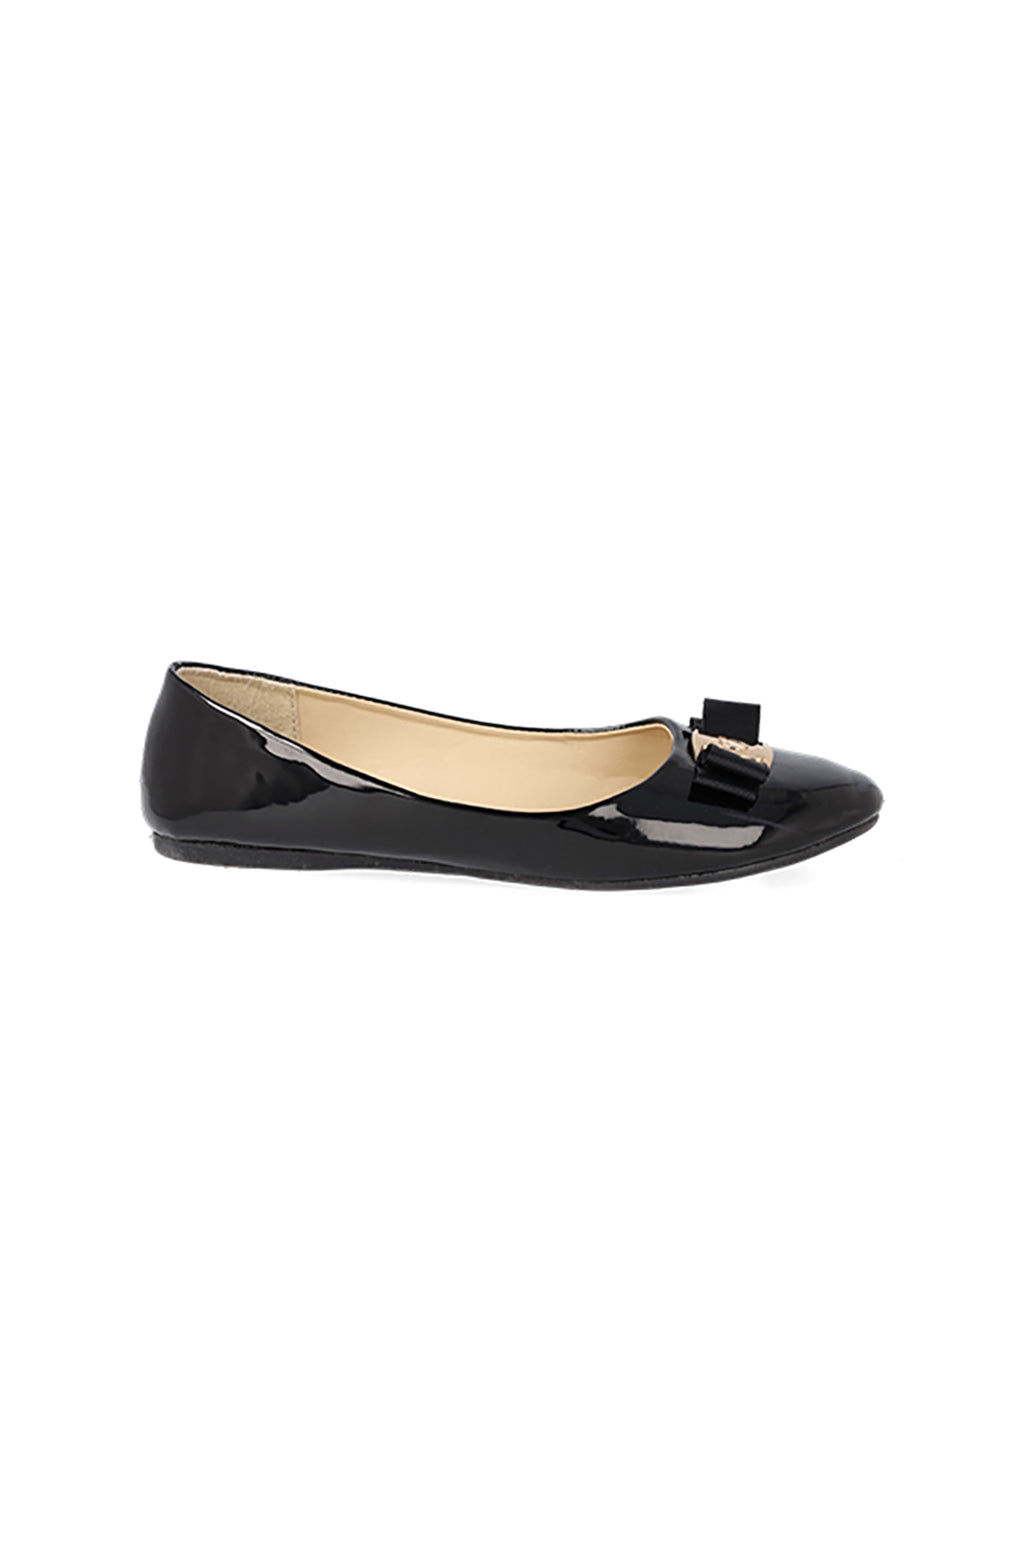 Alfalfa Pump With Bow _ 120797 _ Black